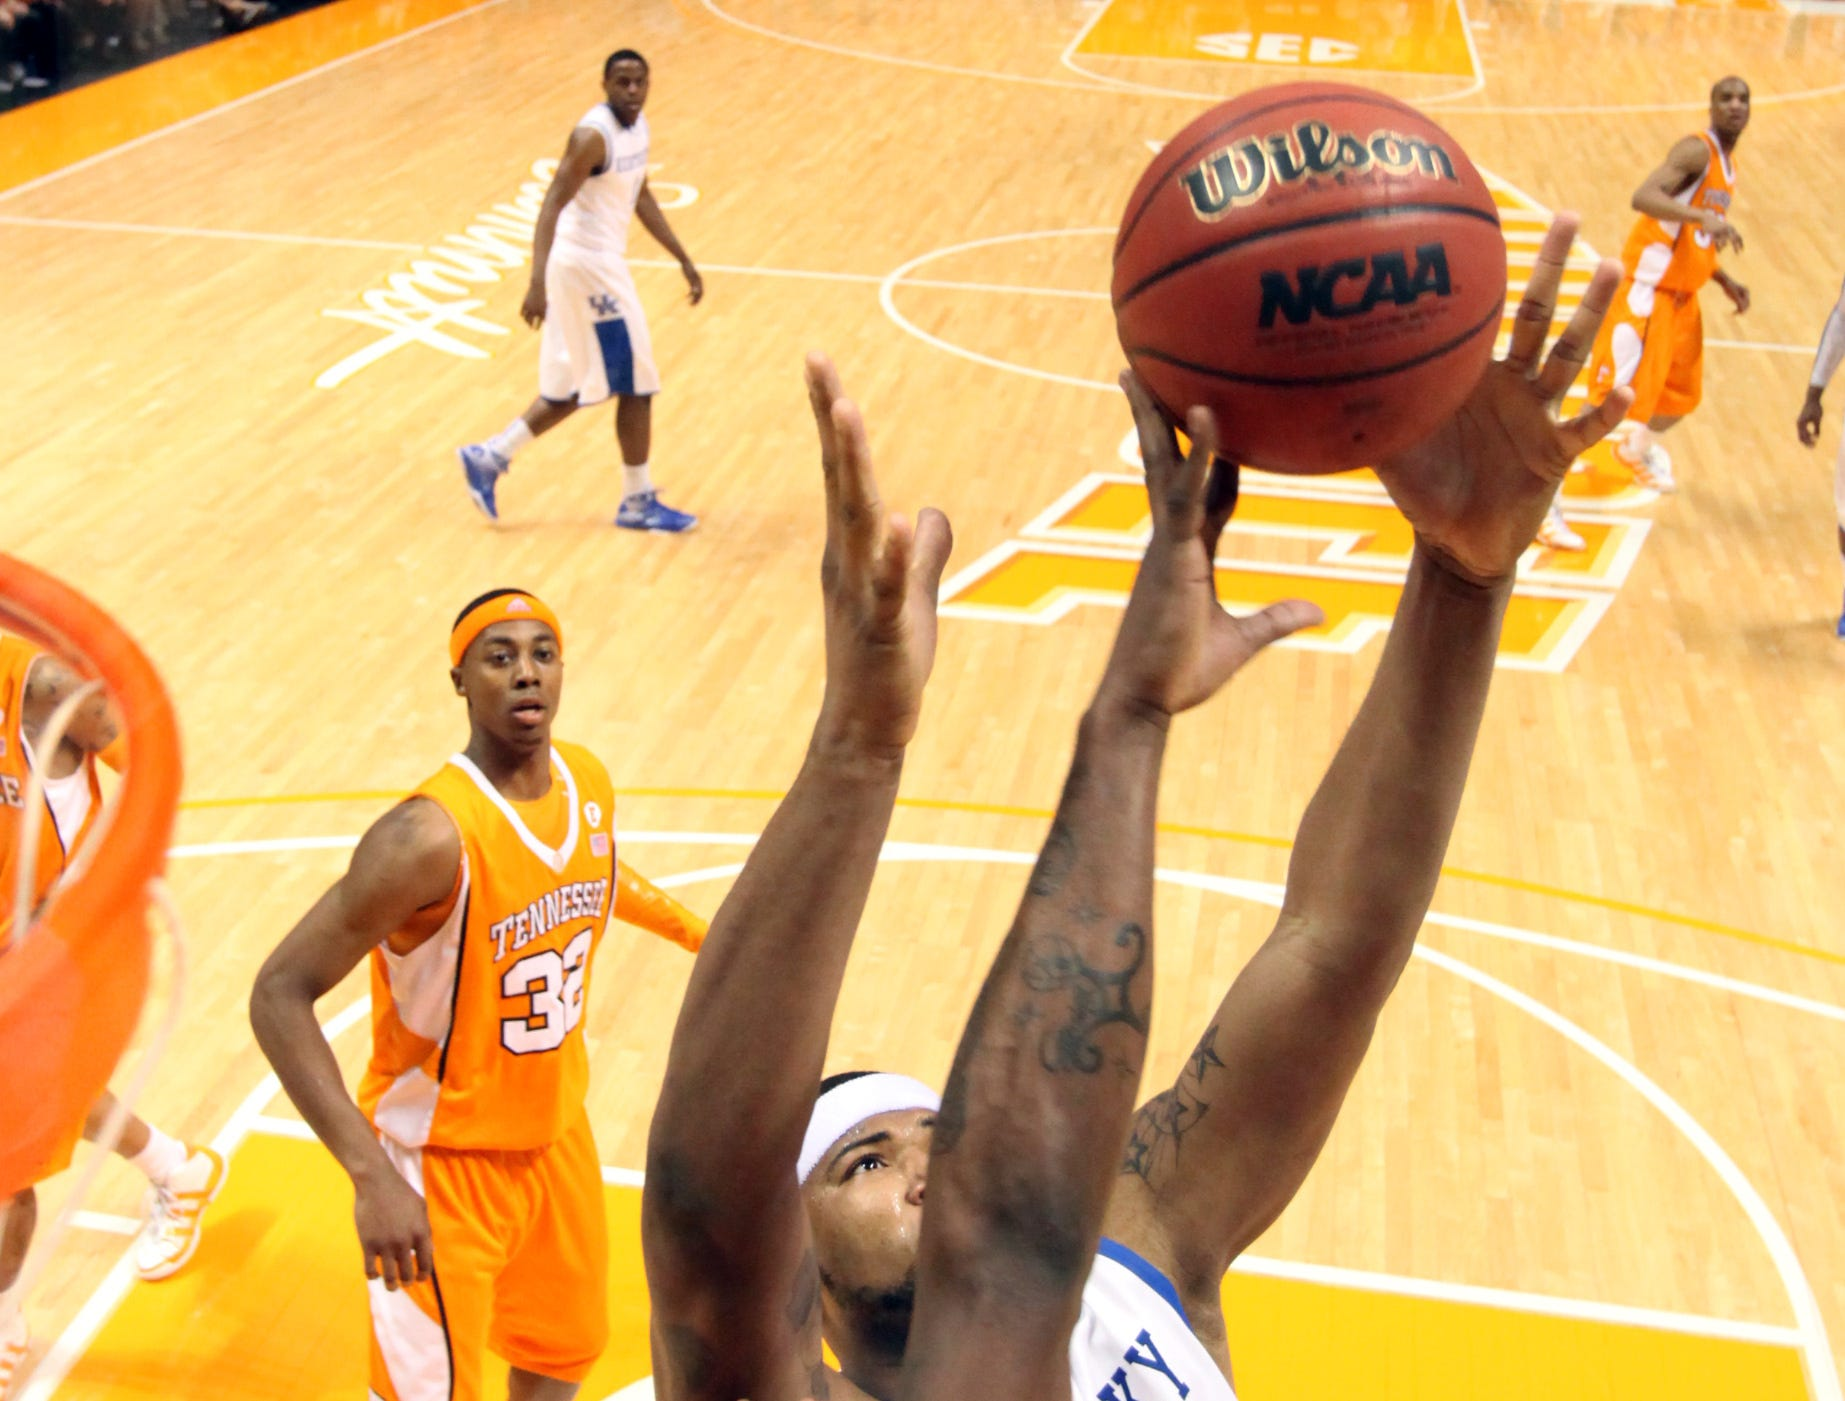 Tennessee forward Wayne Chism tries to stop Kentucky forward DeMarcus Cousins as he goes up for a rebound at Thompson-Boling Arena Saturday, Feb. 27, 2010.  Chism had 6 rebounds and 8 points for the Vols during their 74-65 upset over the Wildcats.